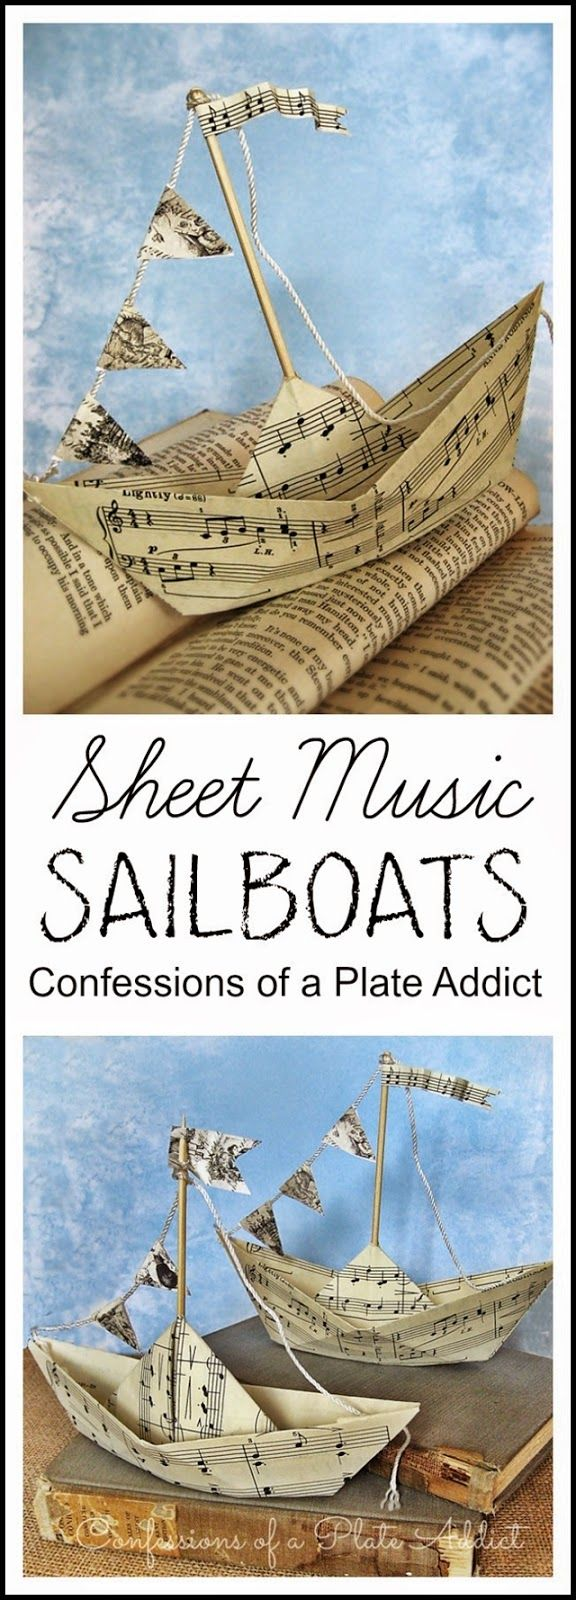 CONFESSIONS OF A PLATE ADDICT: Summery Sheet Music Sailboats